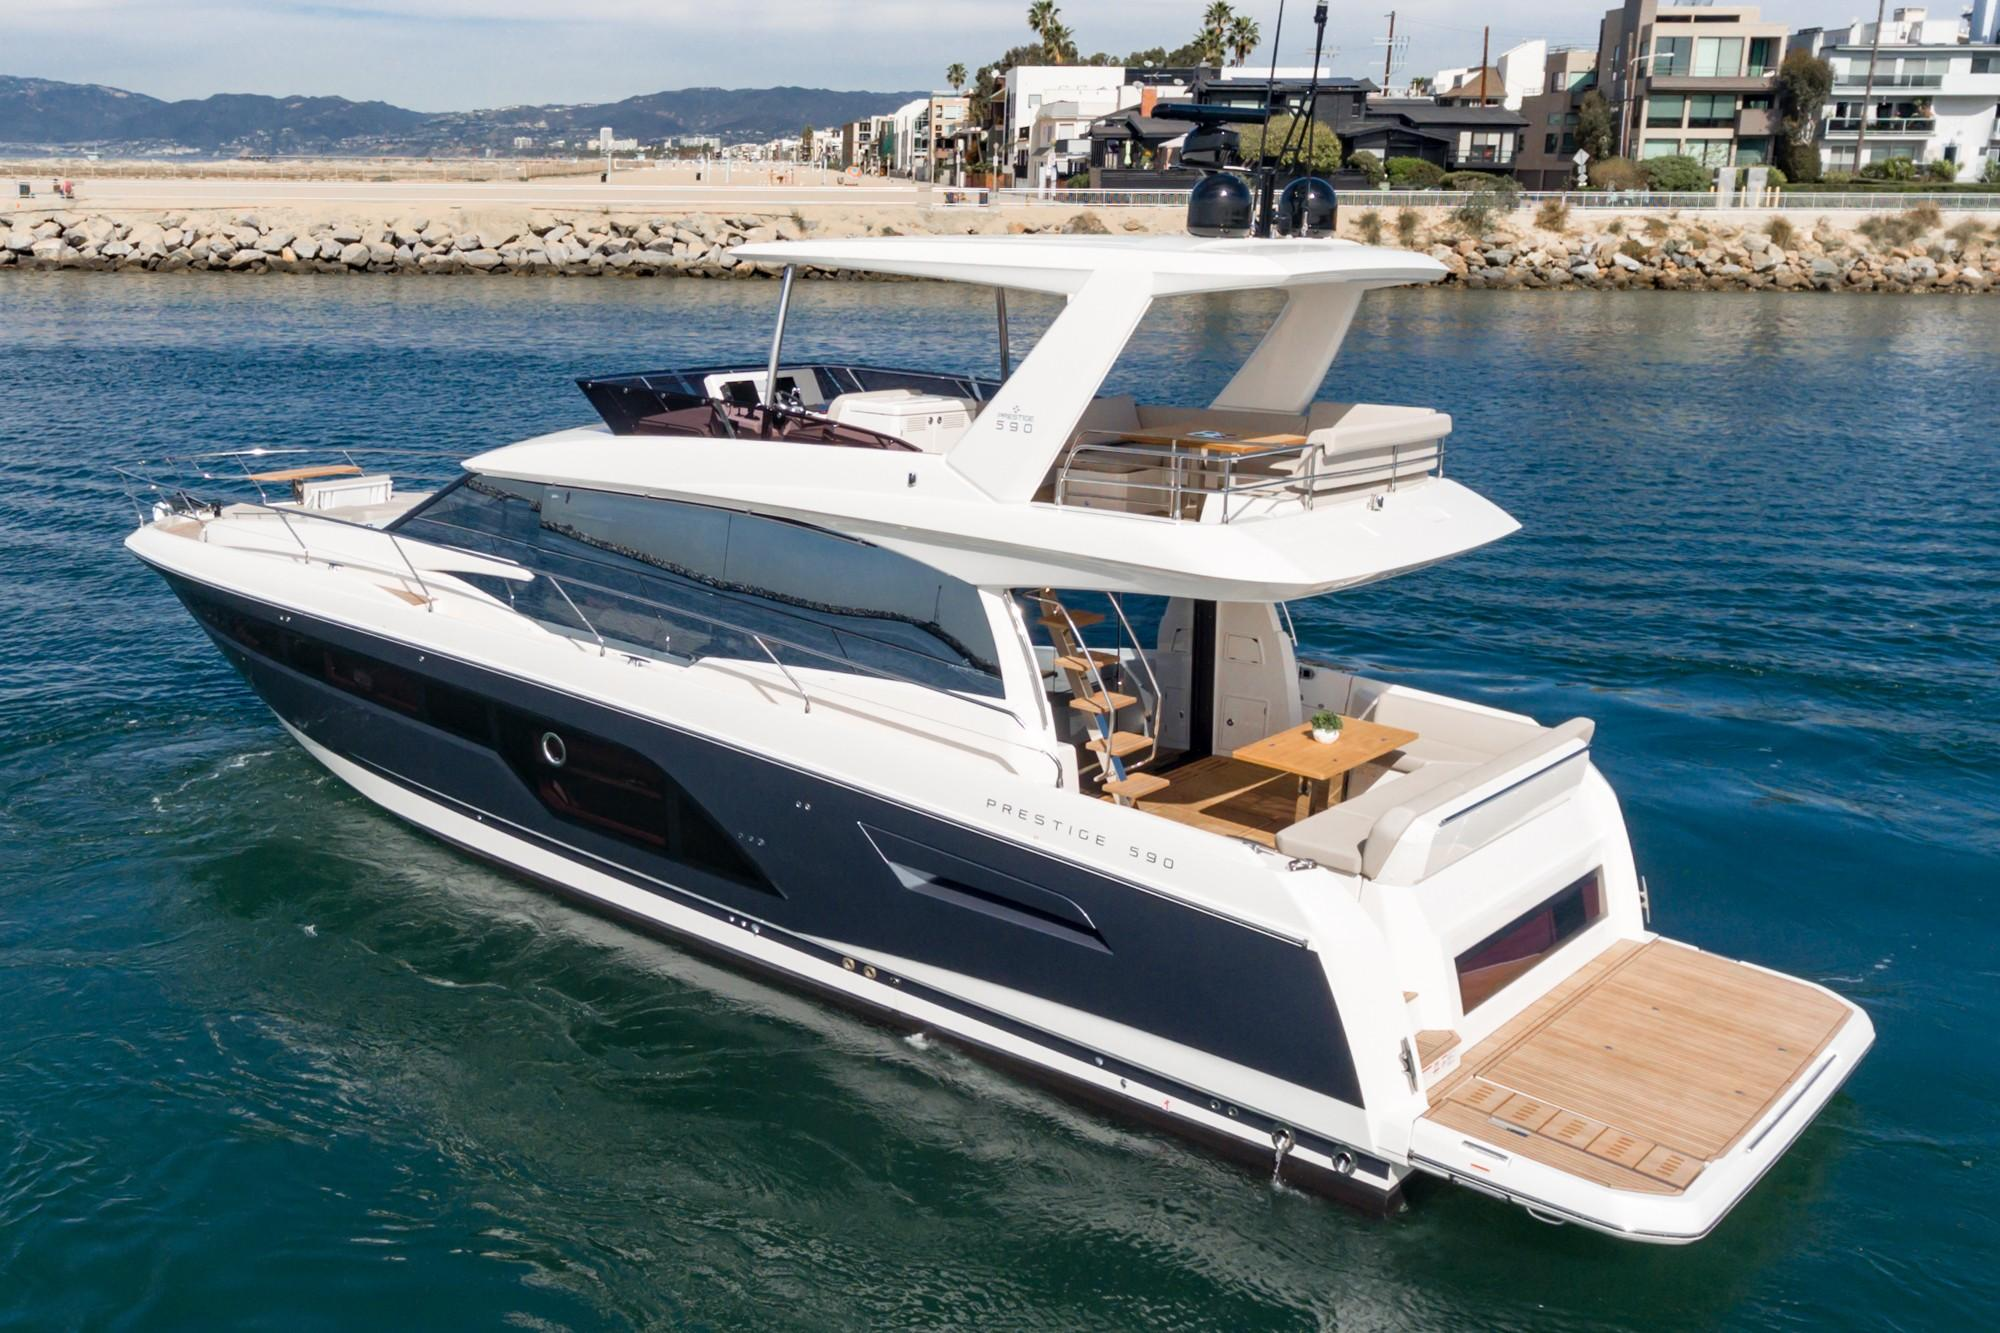 2021 Prestige 590 Fly #75338 inventory image at Sun Country Coastal in Newport Beach